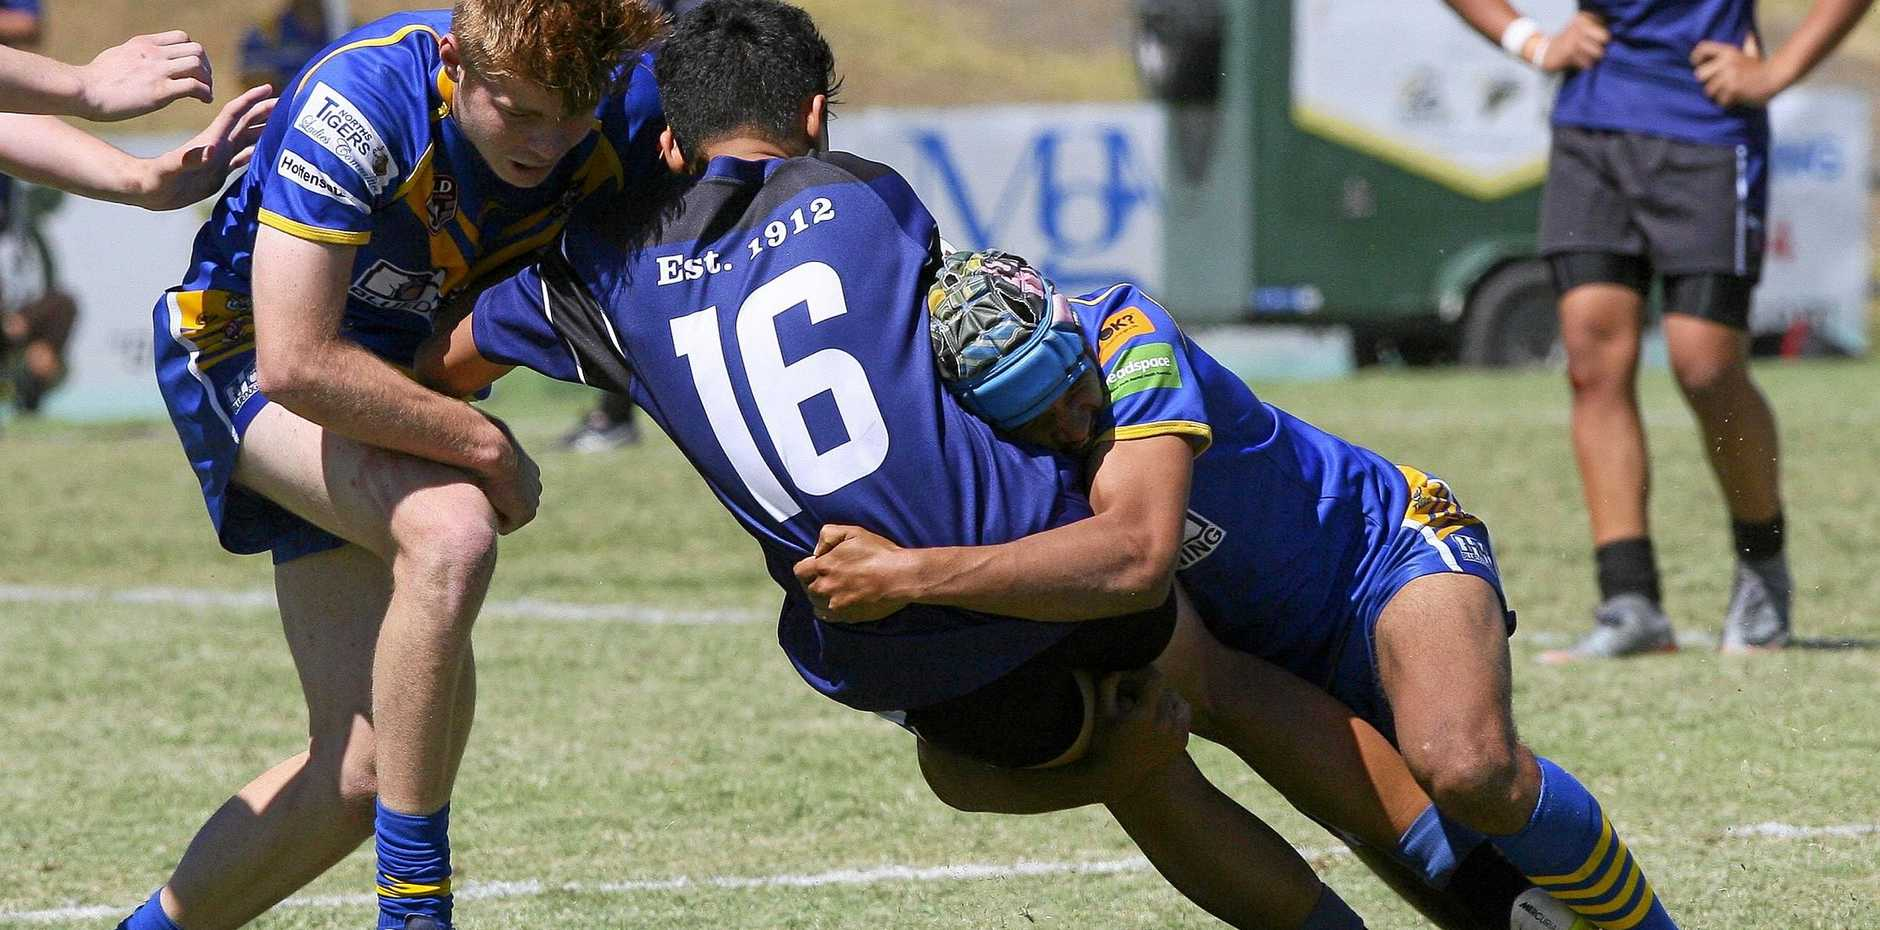 TOP TECHNIQUES: Juniors must be taught the right way to tackle according to Ipswich Diggers 20s coach Chris Doyle.